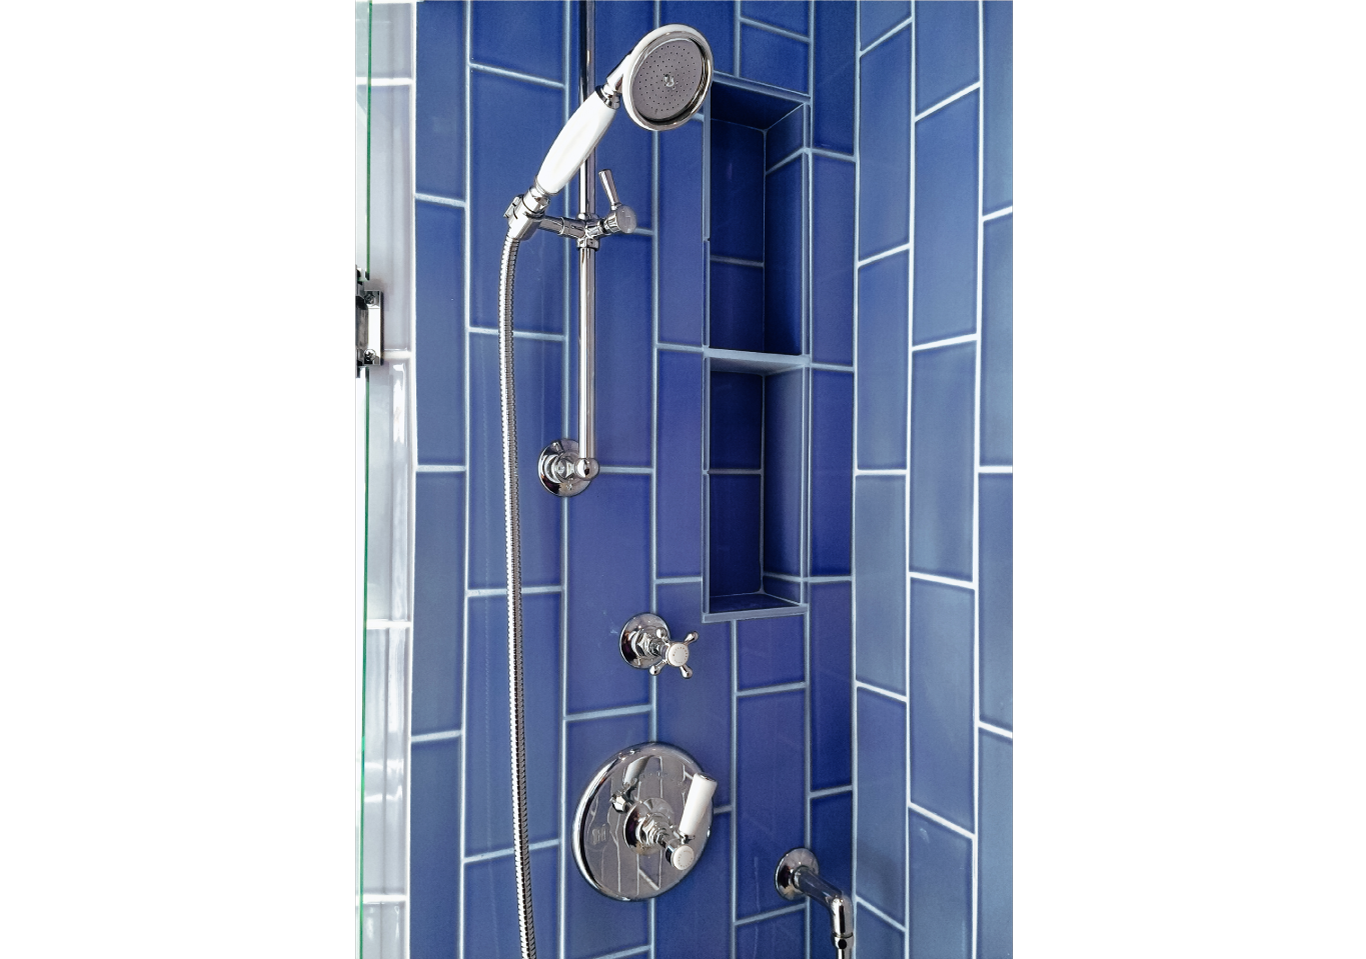 Blue vertical tiled shower